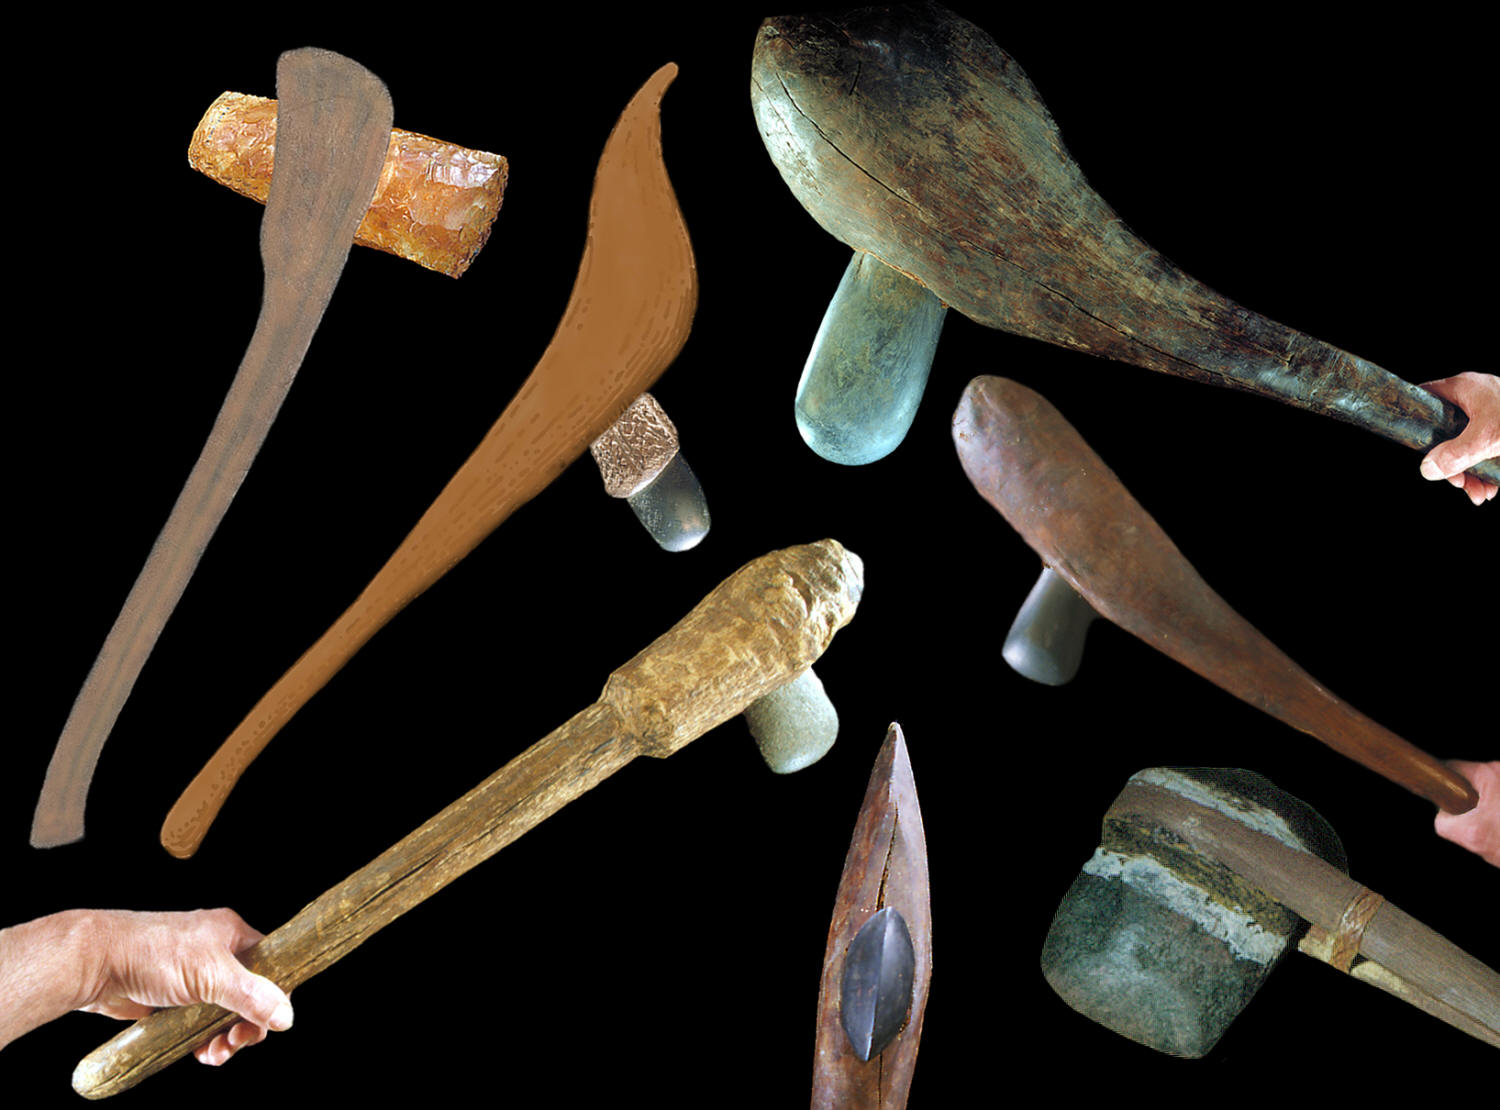 Seven hafted axes from different areas of the world.